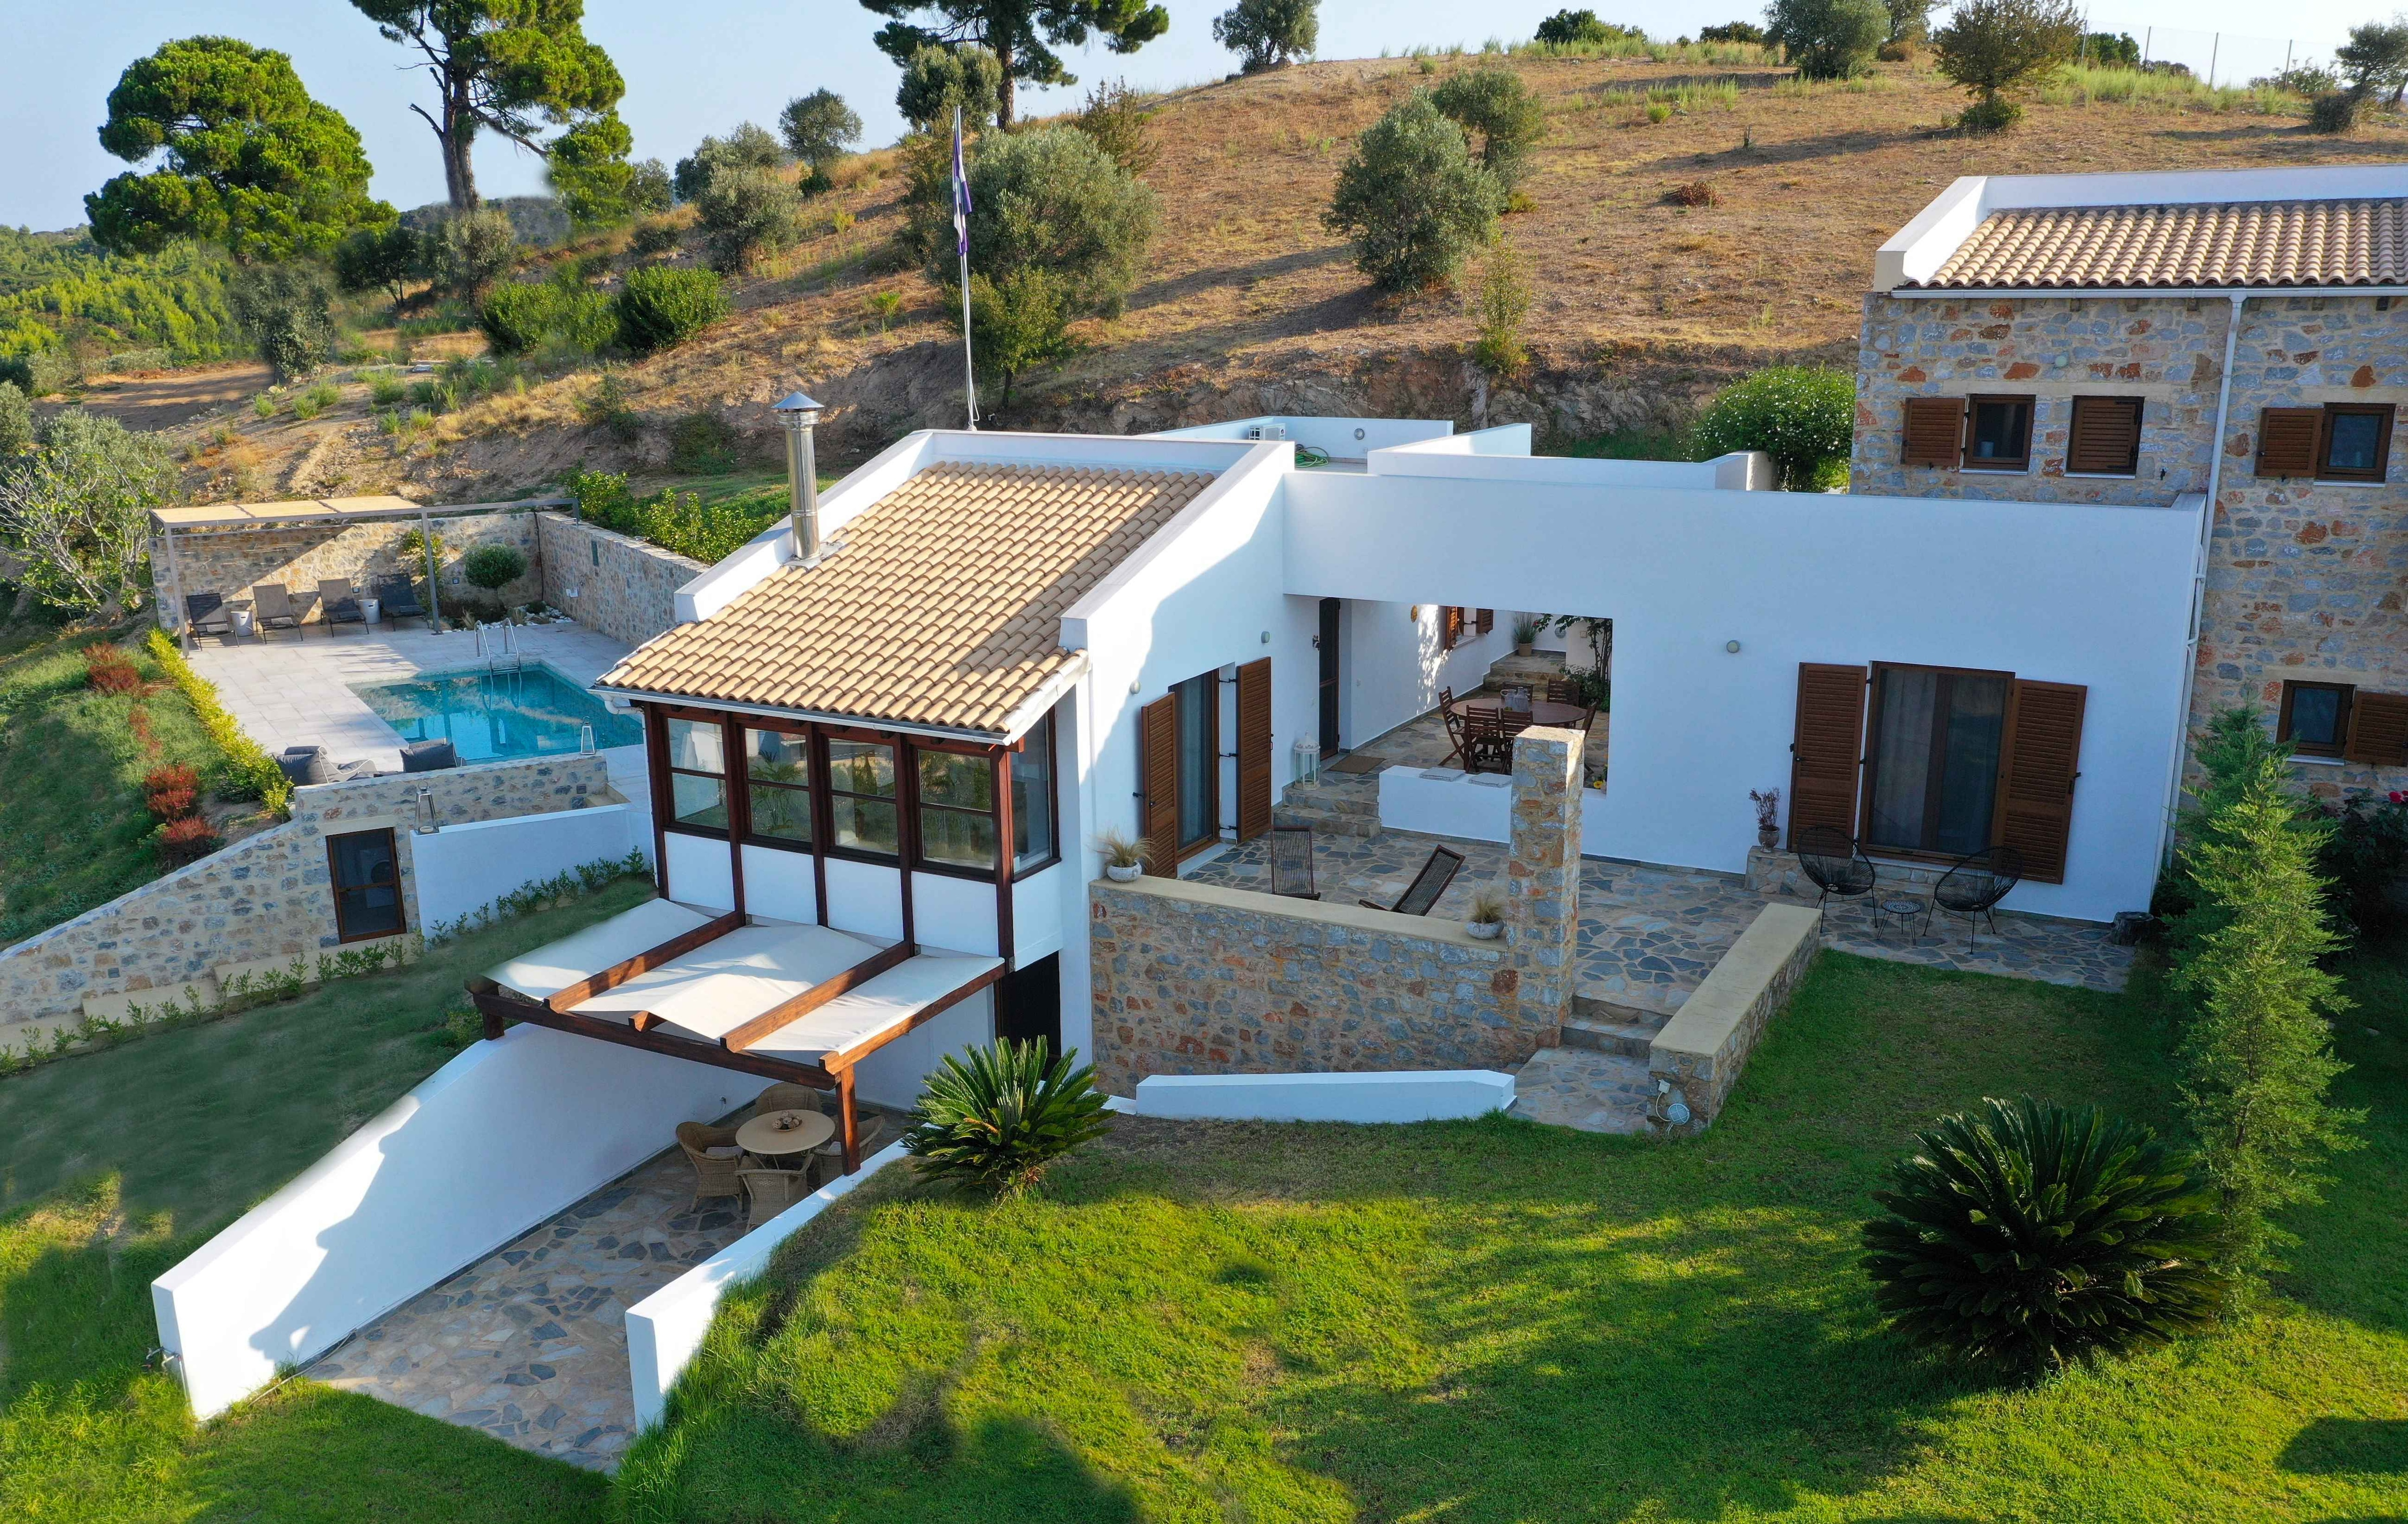 Property Image 2 - Aegean Sea View Idyllic Villa with Alfresco Dining